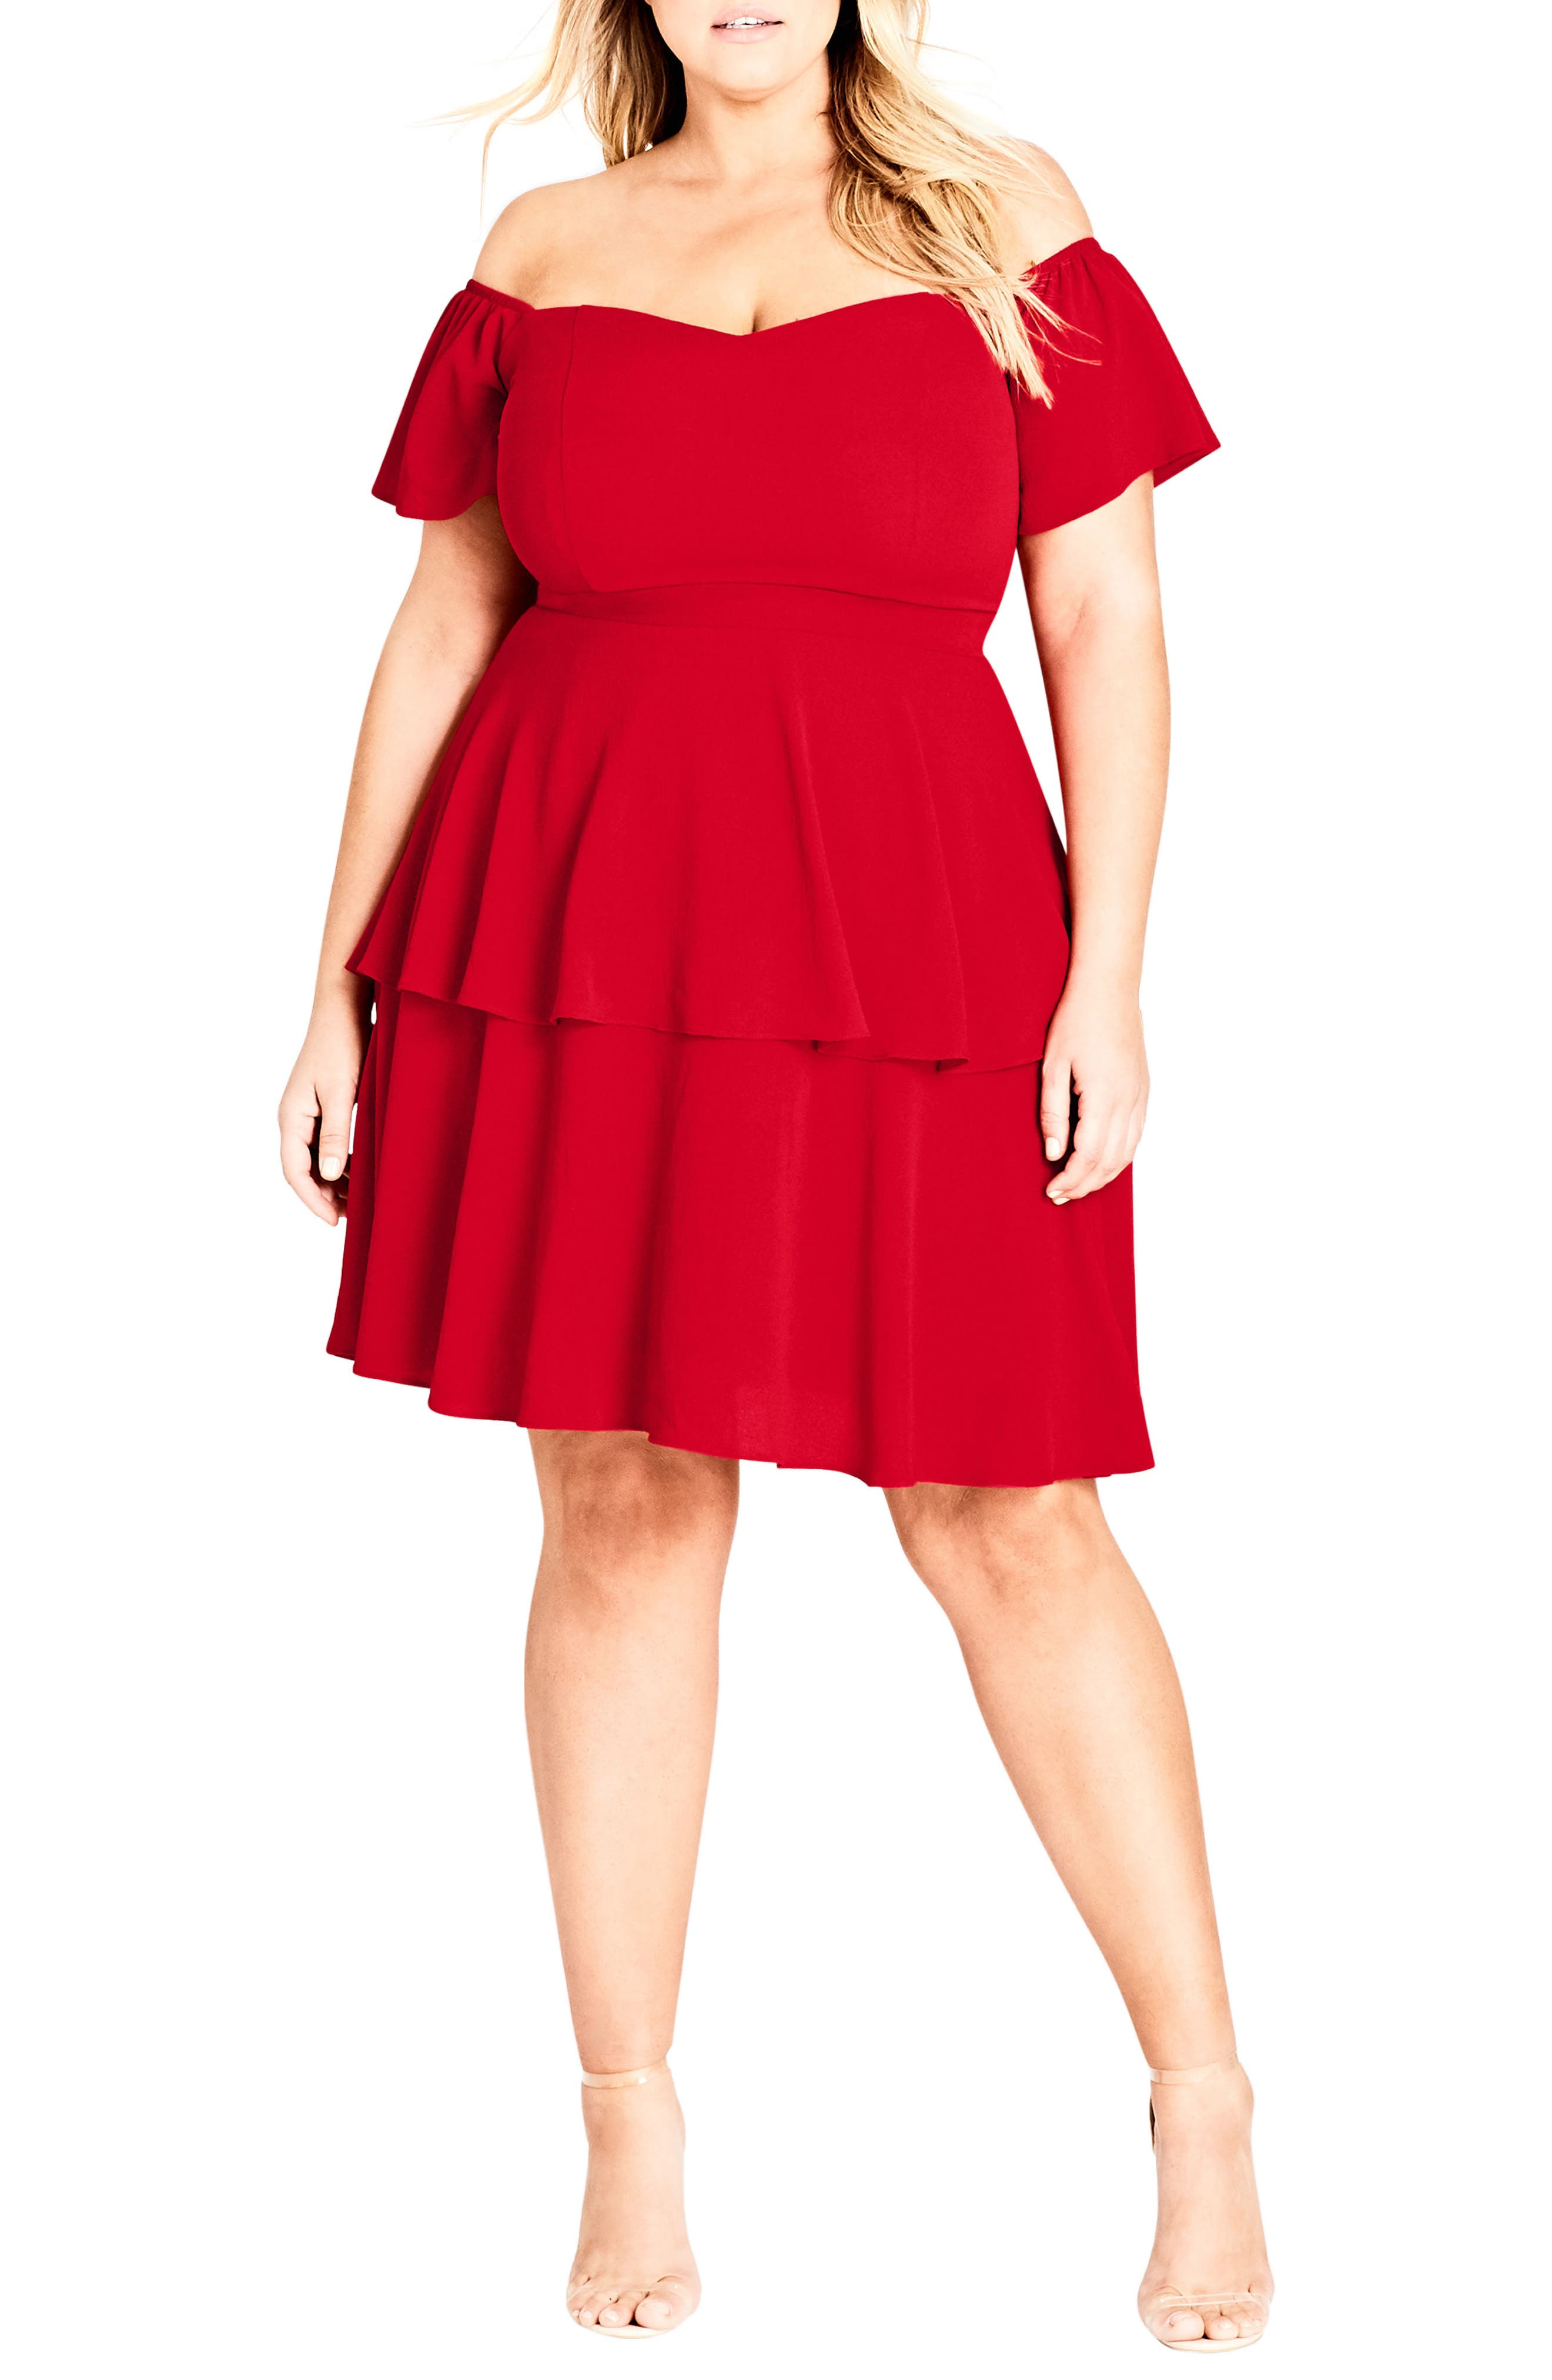 True Romance Off the Shoulder Dress,                             Main thumbnail 1, color,                             RED